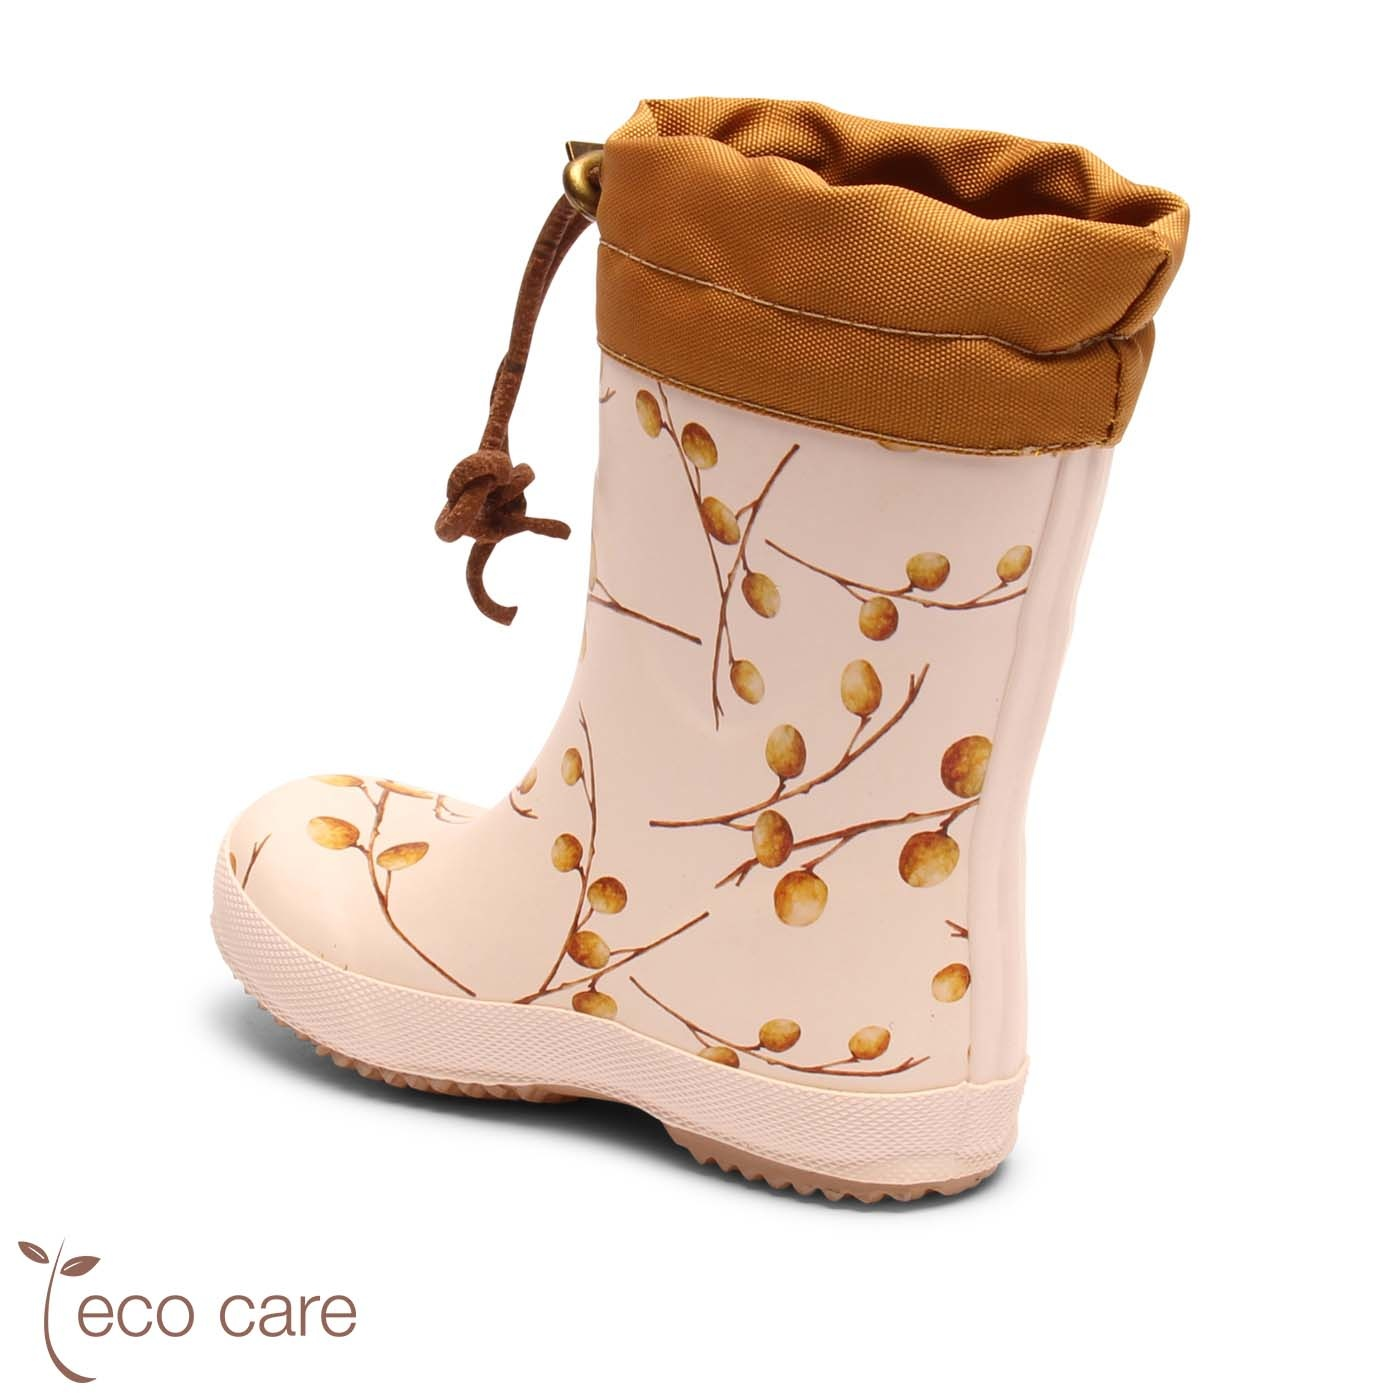 BISGAARD girl eco thermo boot - wool lined rainboot - natural rubber LONGAN FRUIT - 22 to 38